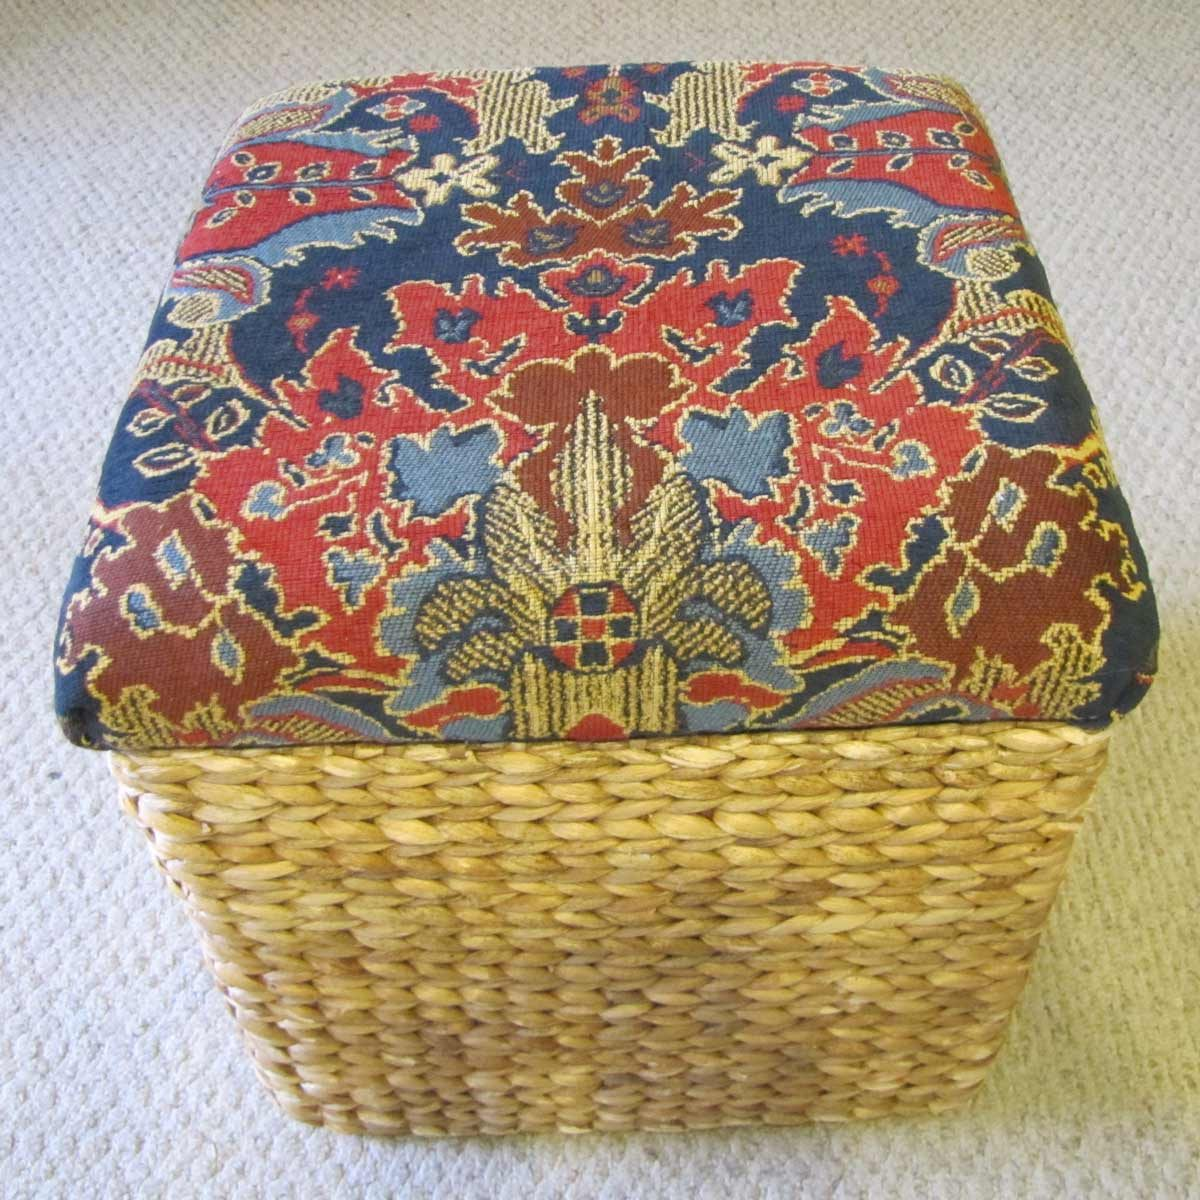 Basket footstool